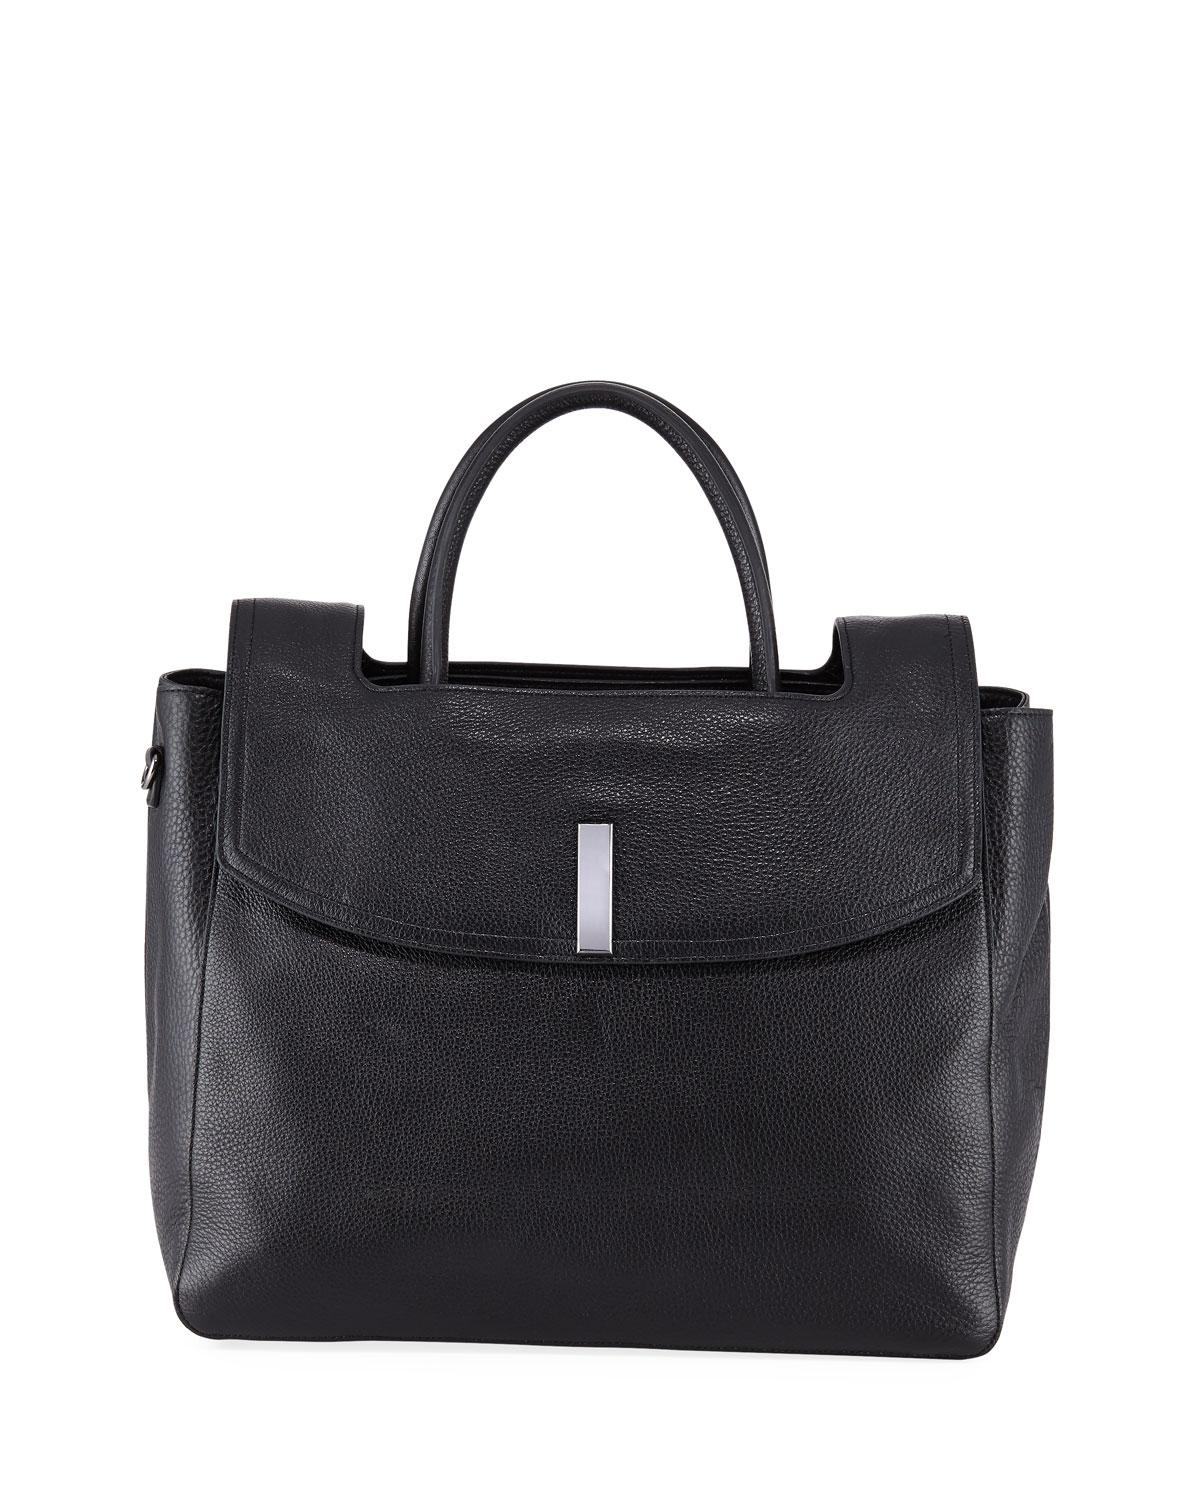 Lyst - Halston Large Tote Bag With Flap in Black 1999da6392d19